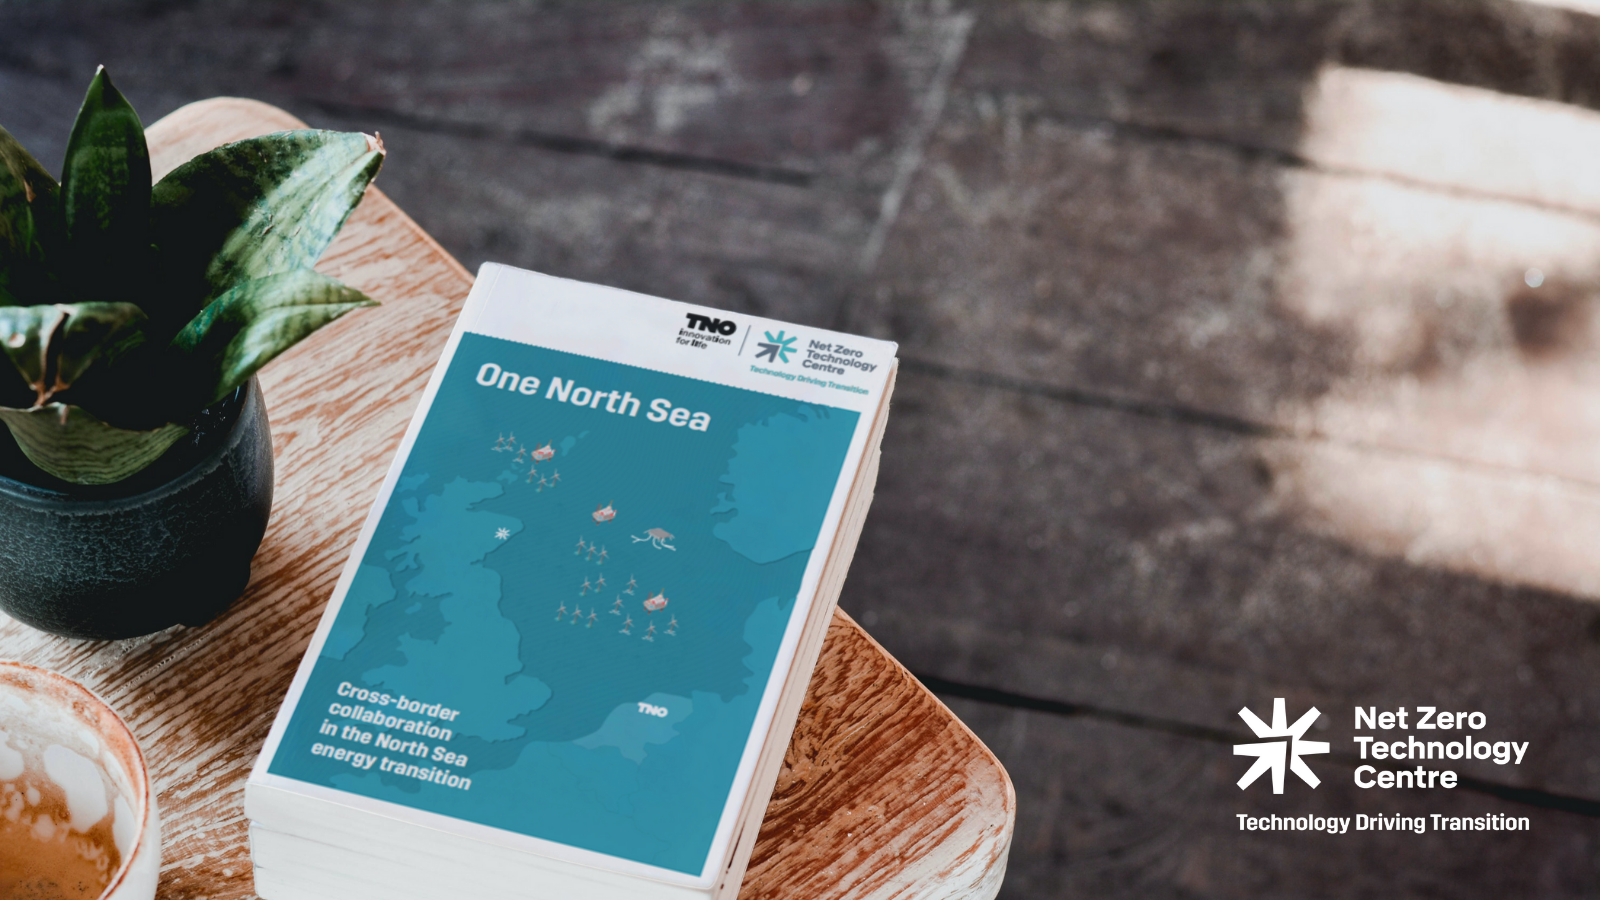 MEMBER NEWS: The Net Zero Technology Centre and TNO launch flagship database to share North Sea resources